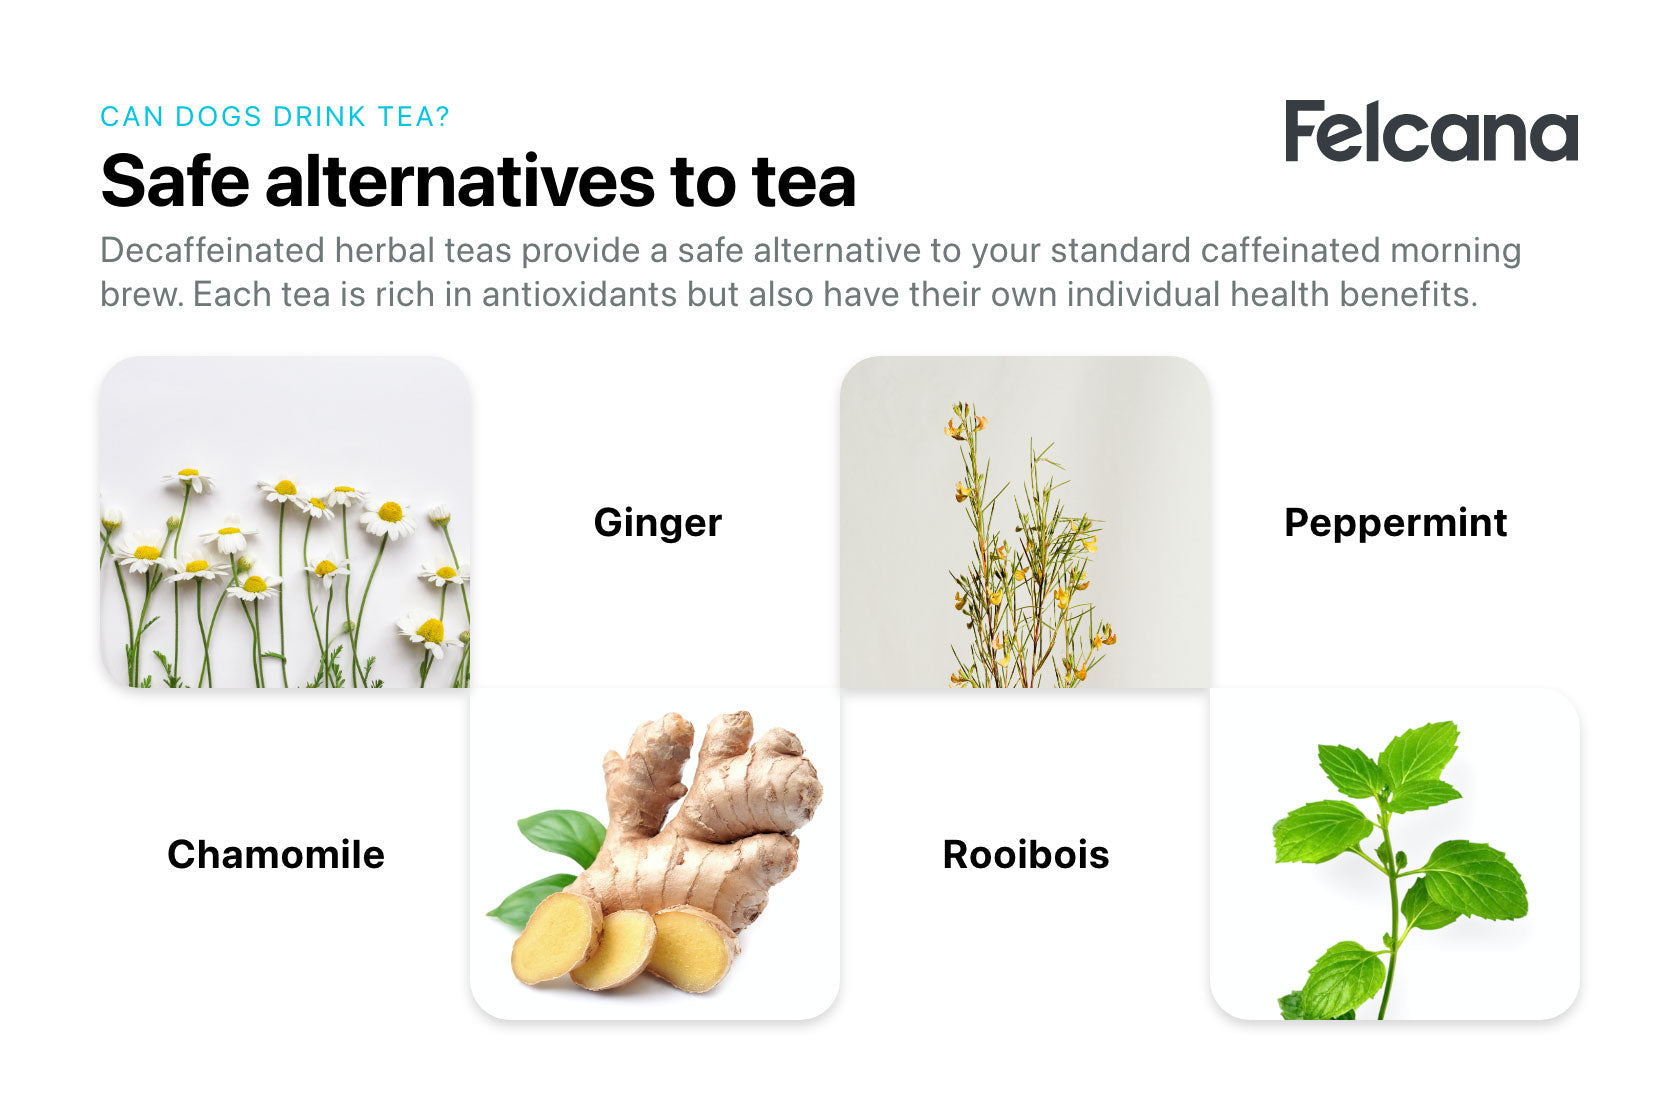 Safe alternatives to tea for dogs, including chamomile, ginger, roobois and peppermint